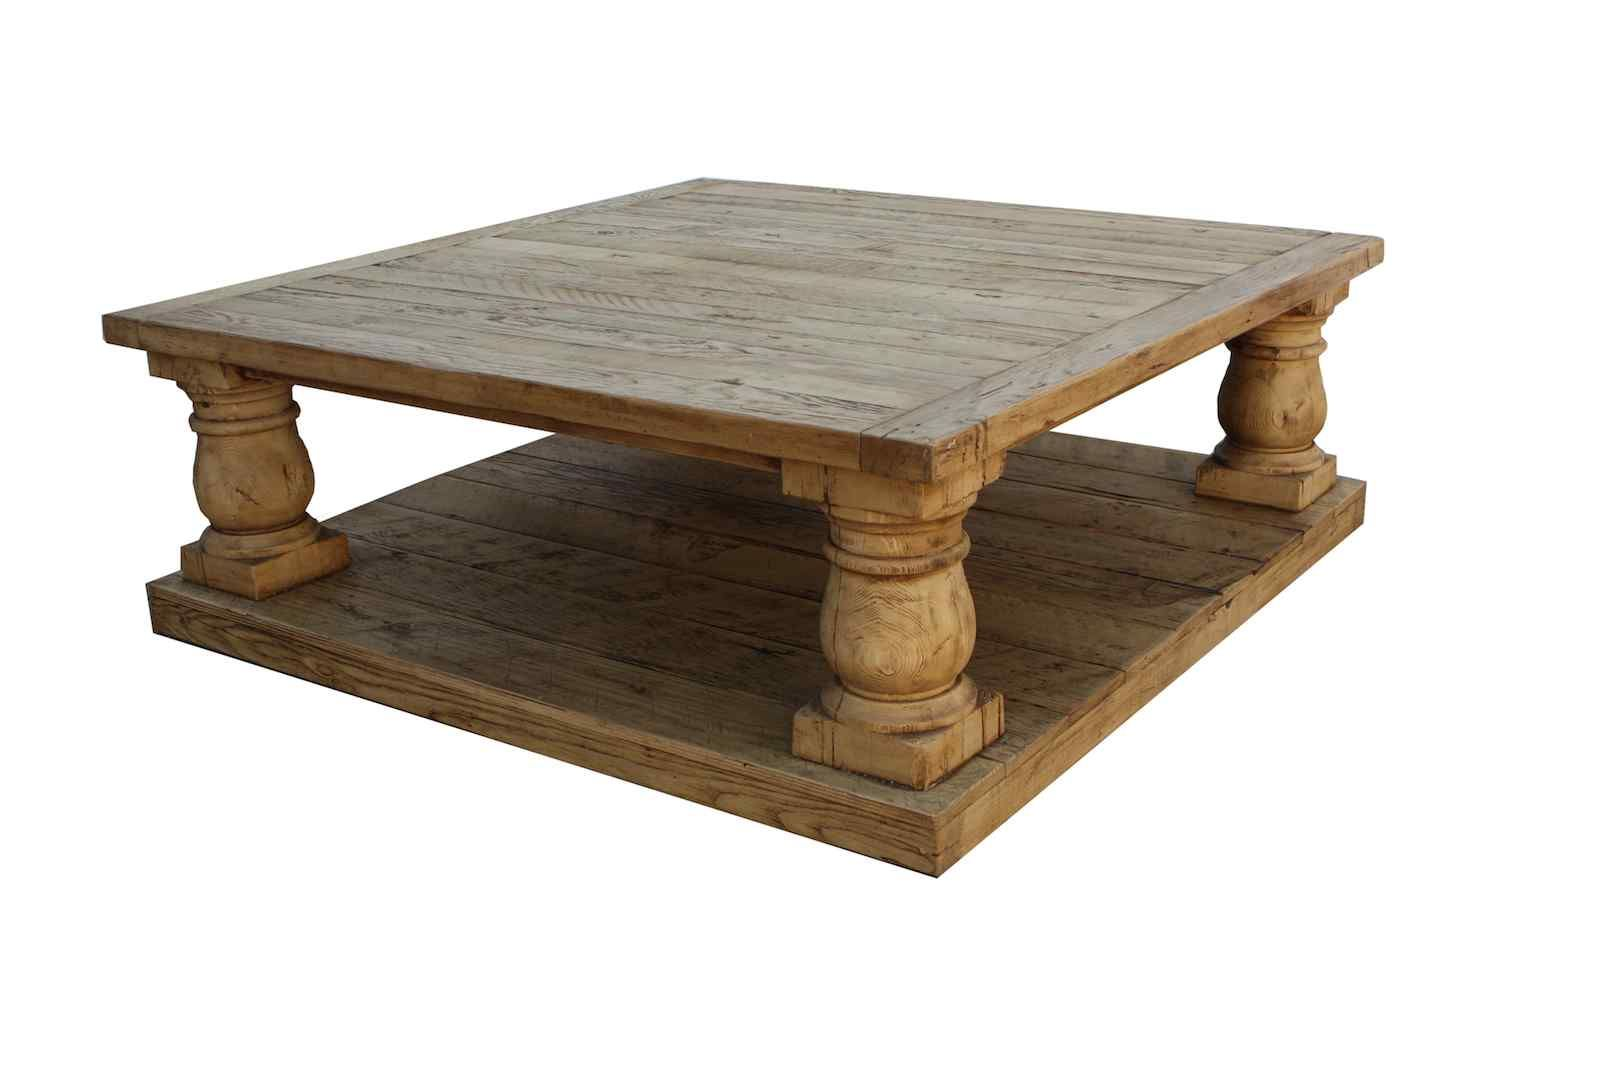 Postobello Large Turned Leg Coffee Table Built In Reclaimed Wood Tables Handcrafted From Timbers Recycled Old Buildi